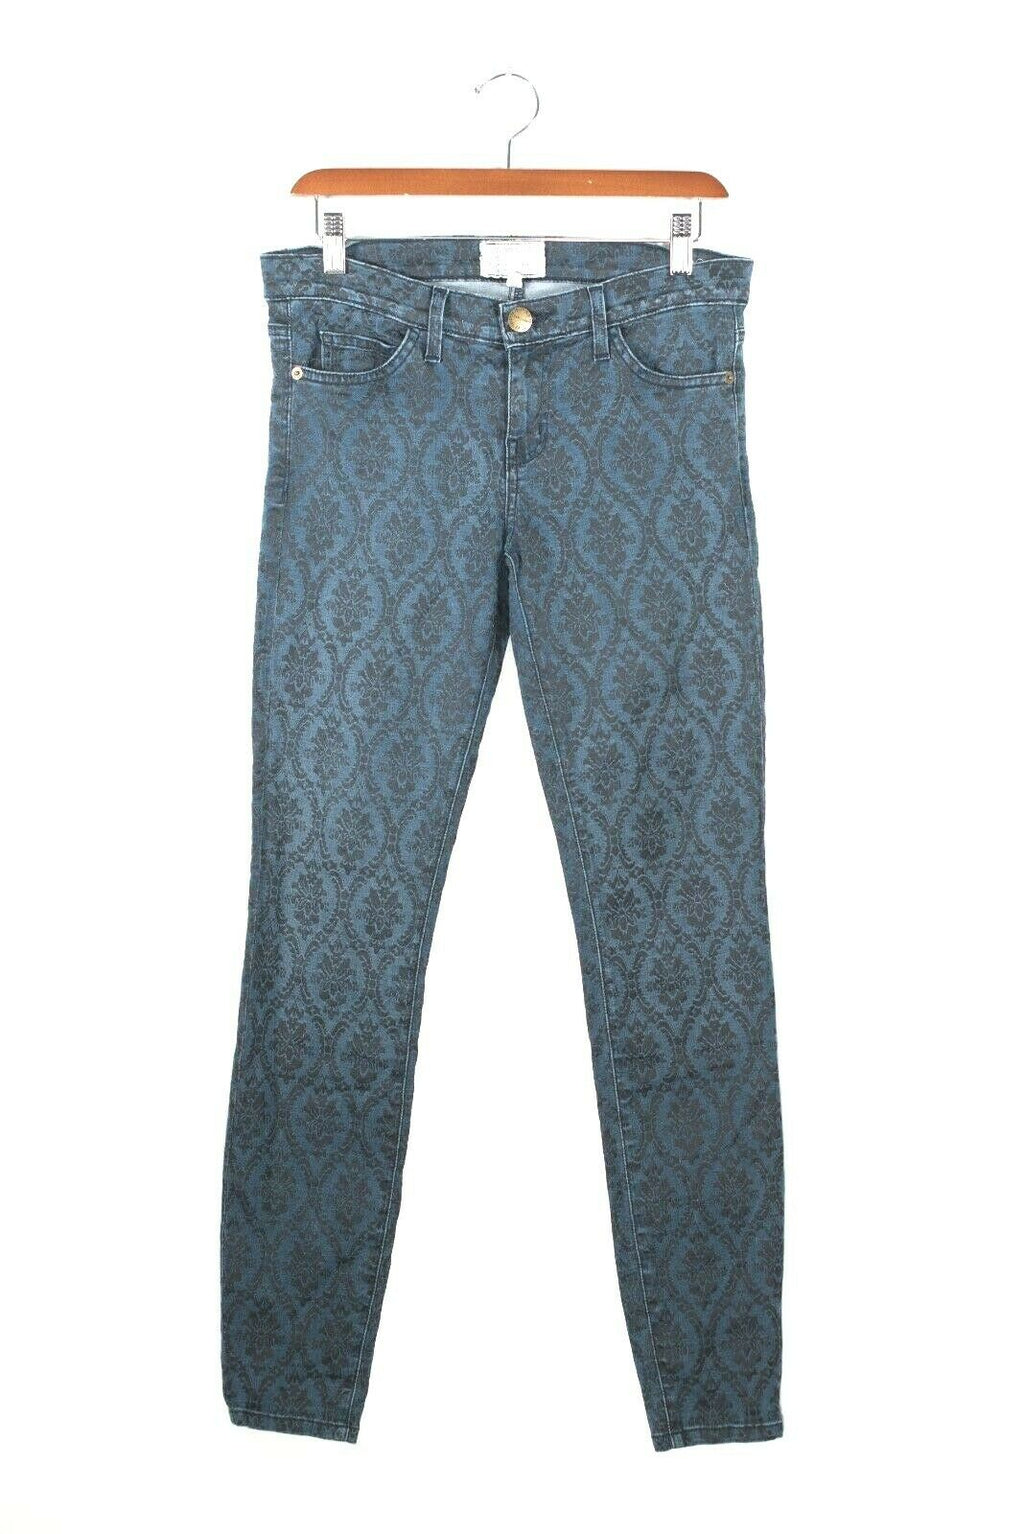 Current/Elliott Womens Size 28 Small Dark Blue Damask Print Skinny Jeans Pants